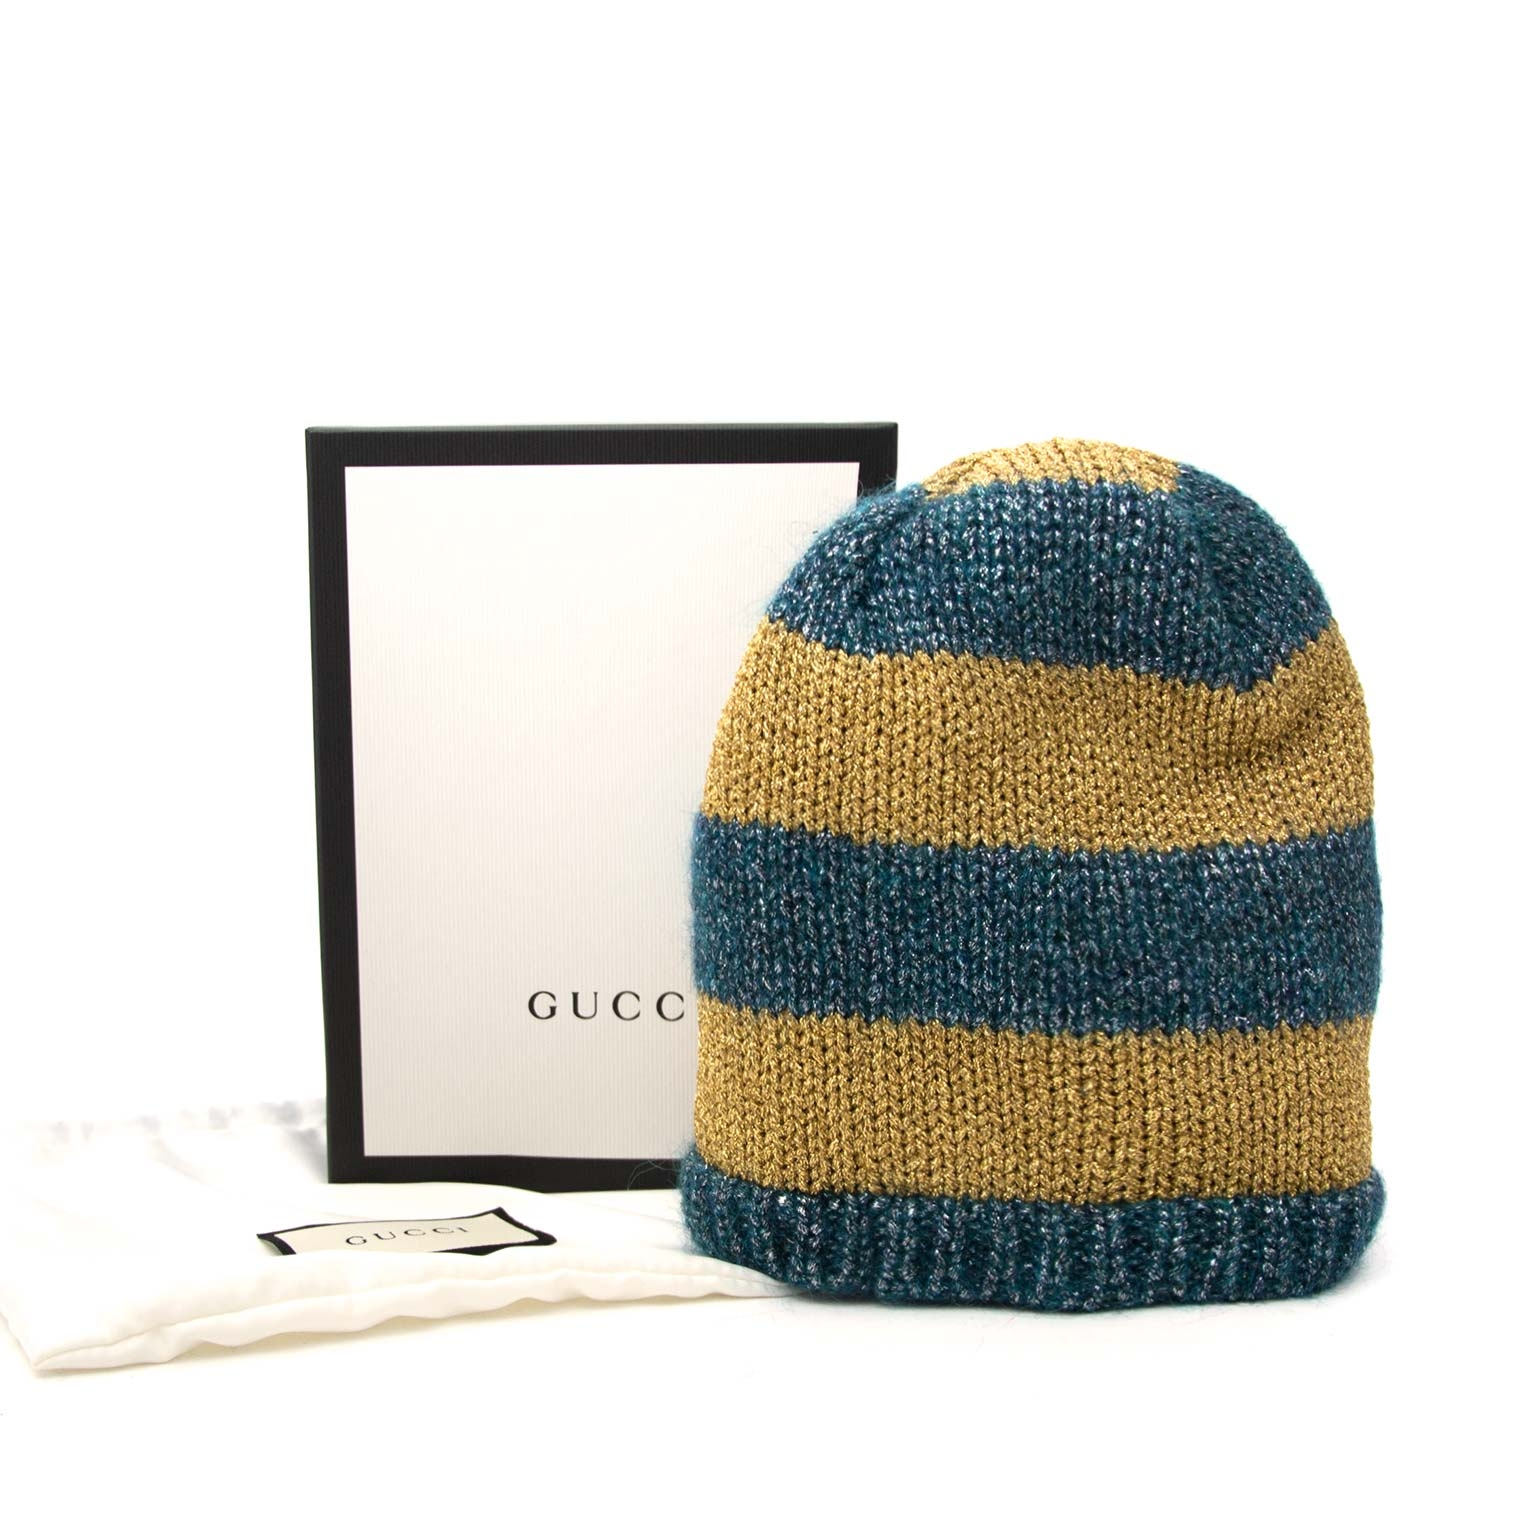 Gucci Green/Blue and Golden Metallic Beanie